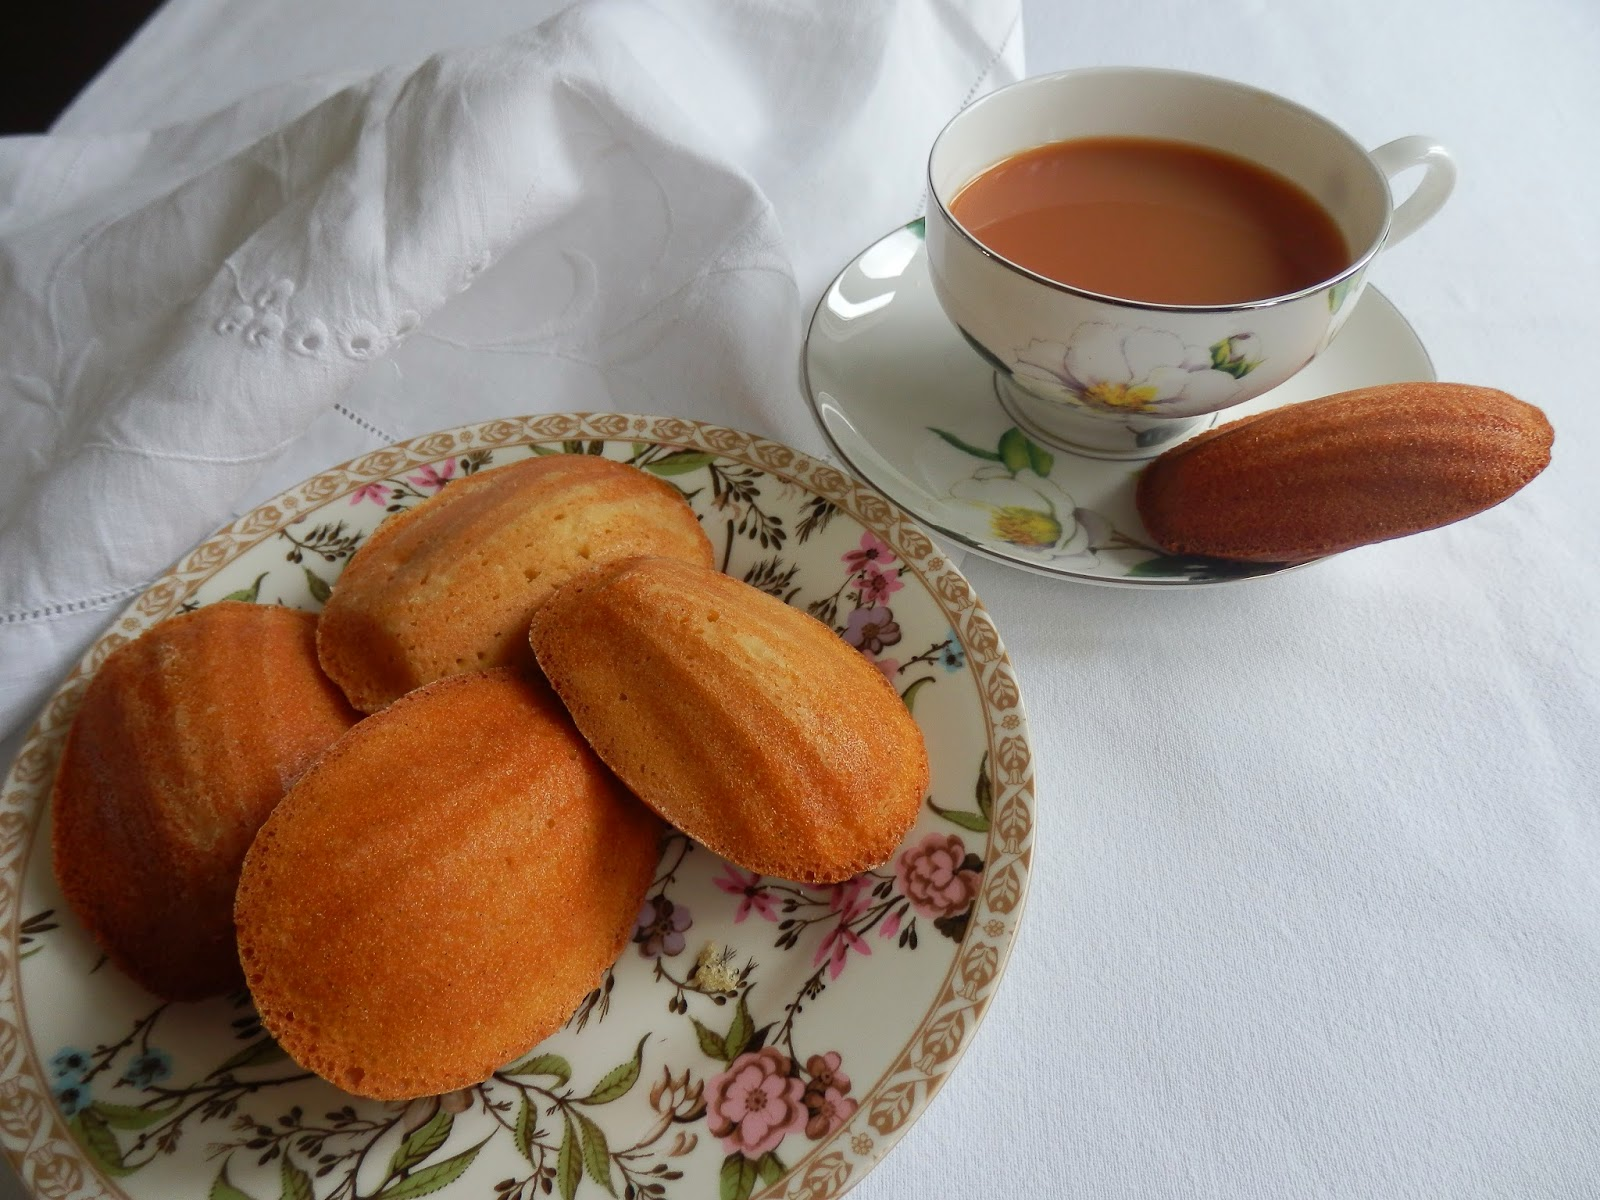 Orange and lemon madeleines